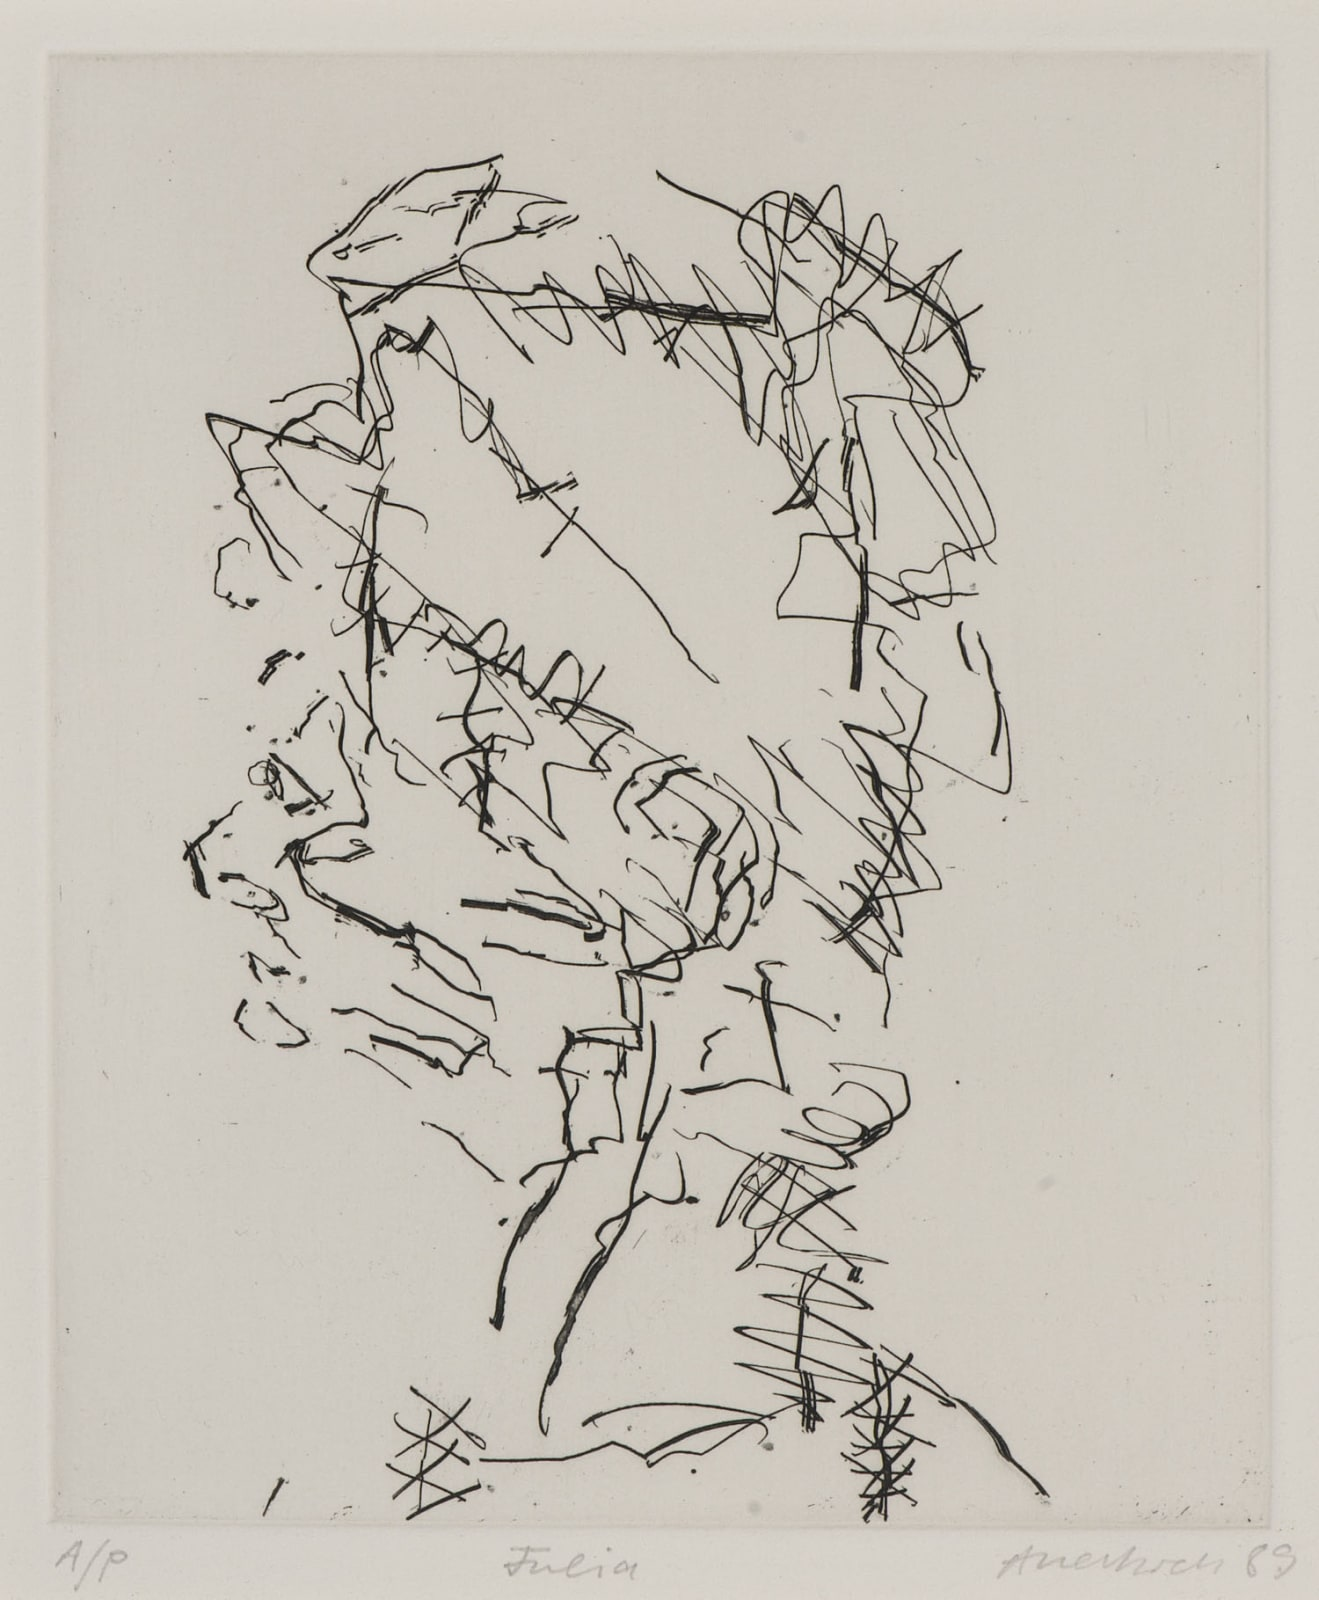 Frank Auerbach (1931-) Julia, Series: Part of Seven Portraits 1989 Etching, printed on Somerset white paper, artist's proof outside the published edition of 50 19.5 x 16.5 cm Ben Uri Collection © Frank Auerbach, courtesy Marlborough Fine Art To see and discover more about this artist click here